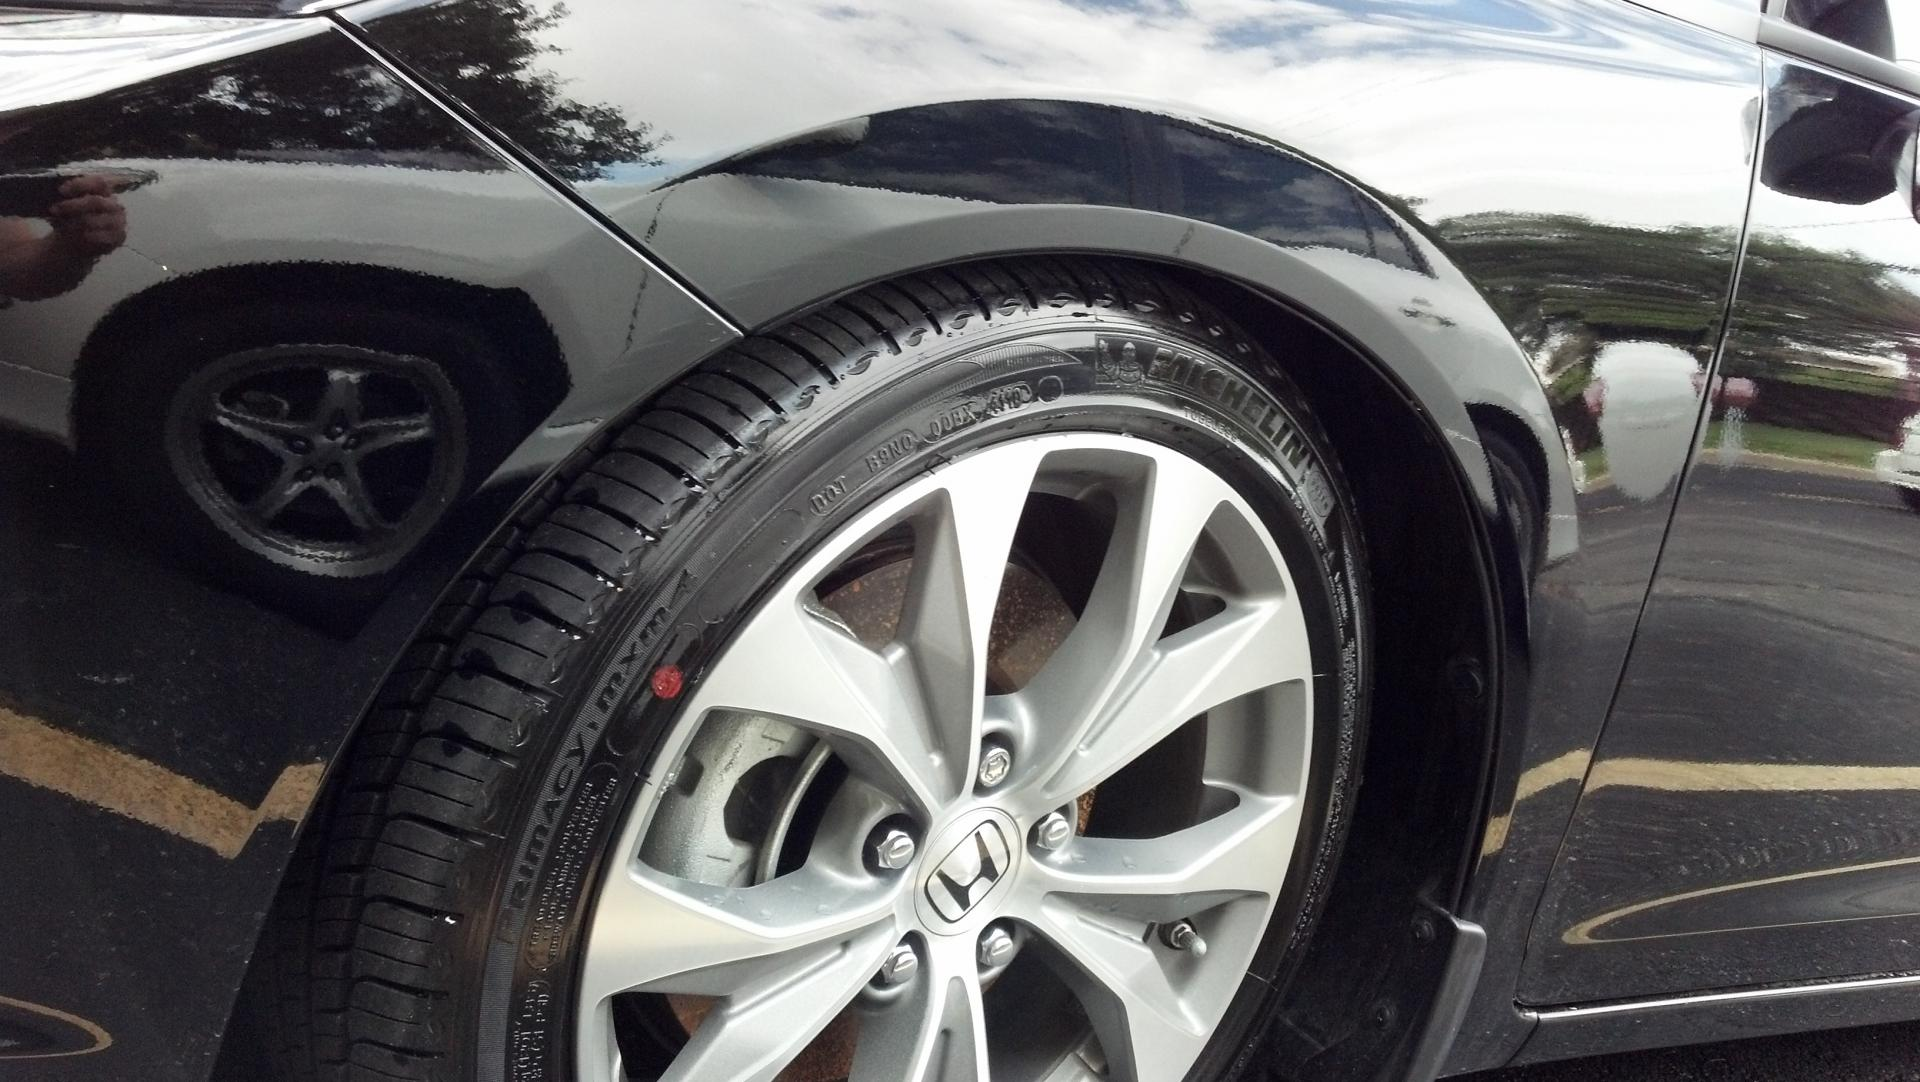 Cleaning Your Tires To Achieve The Best Tire Shine